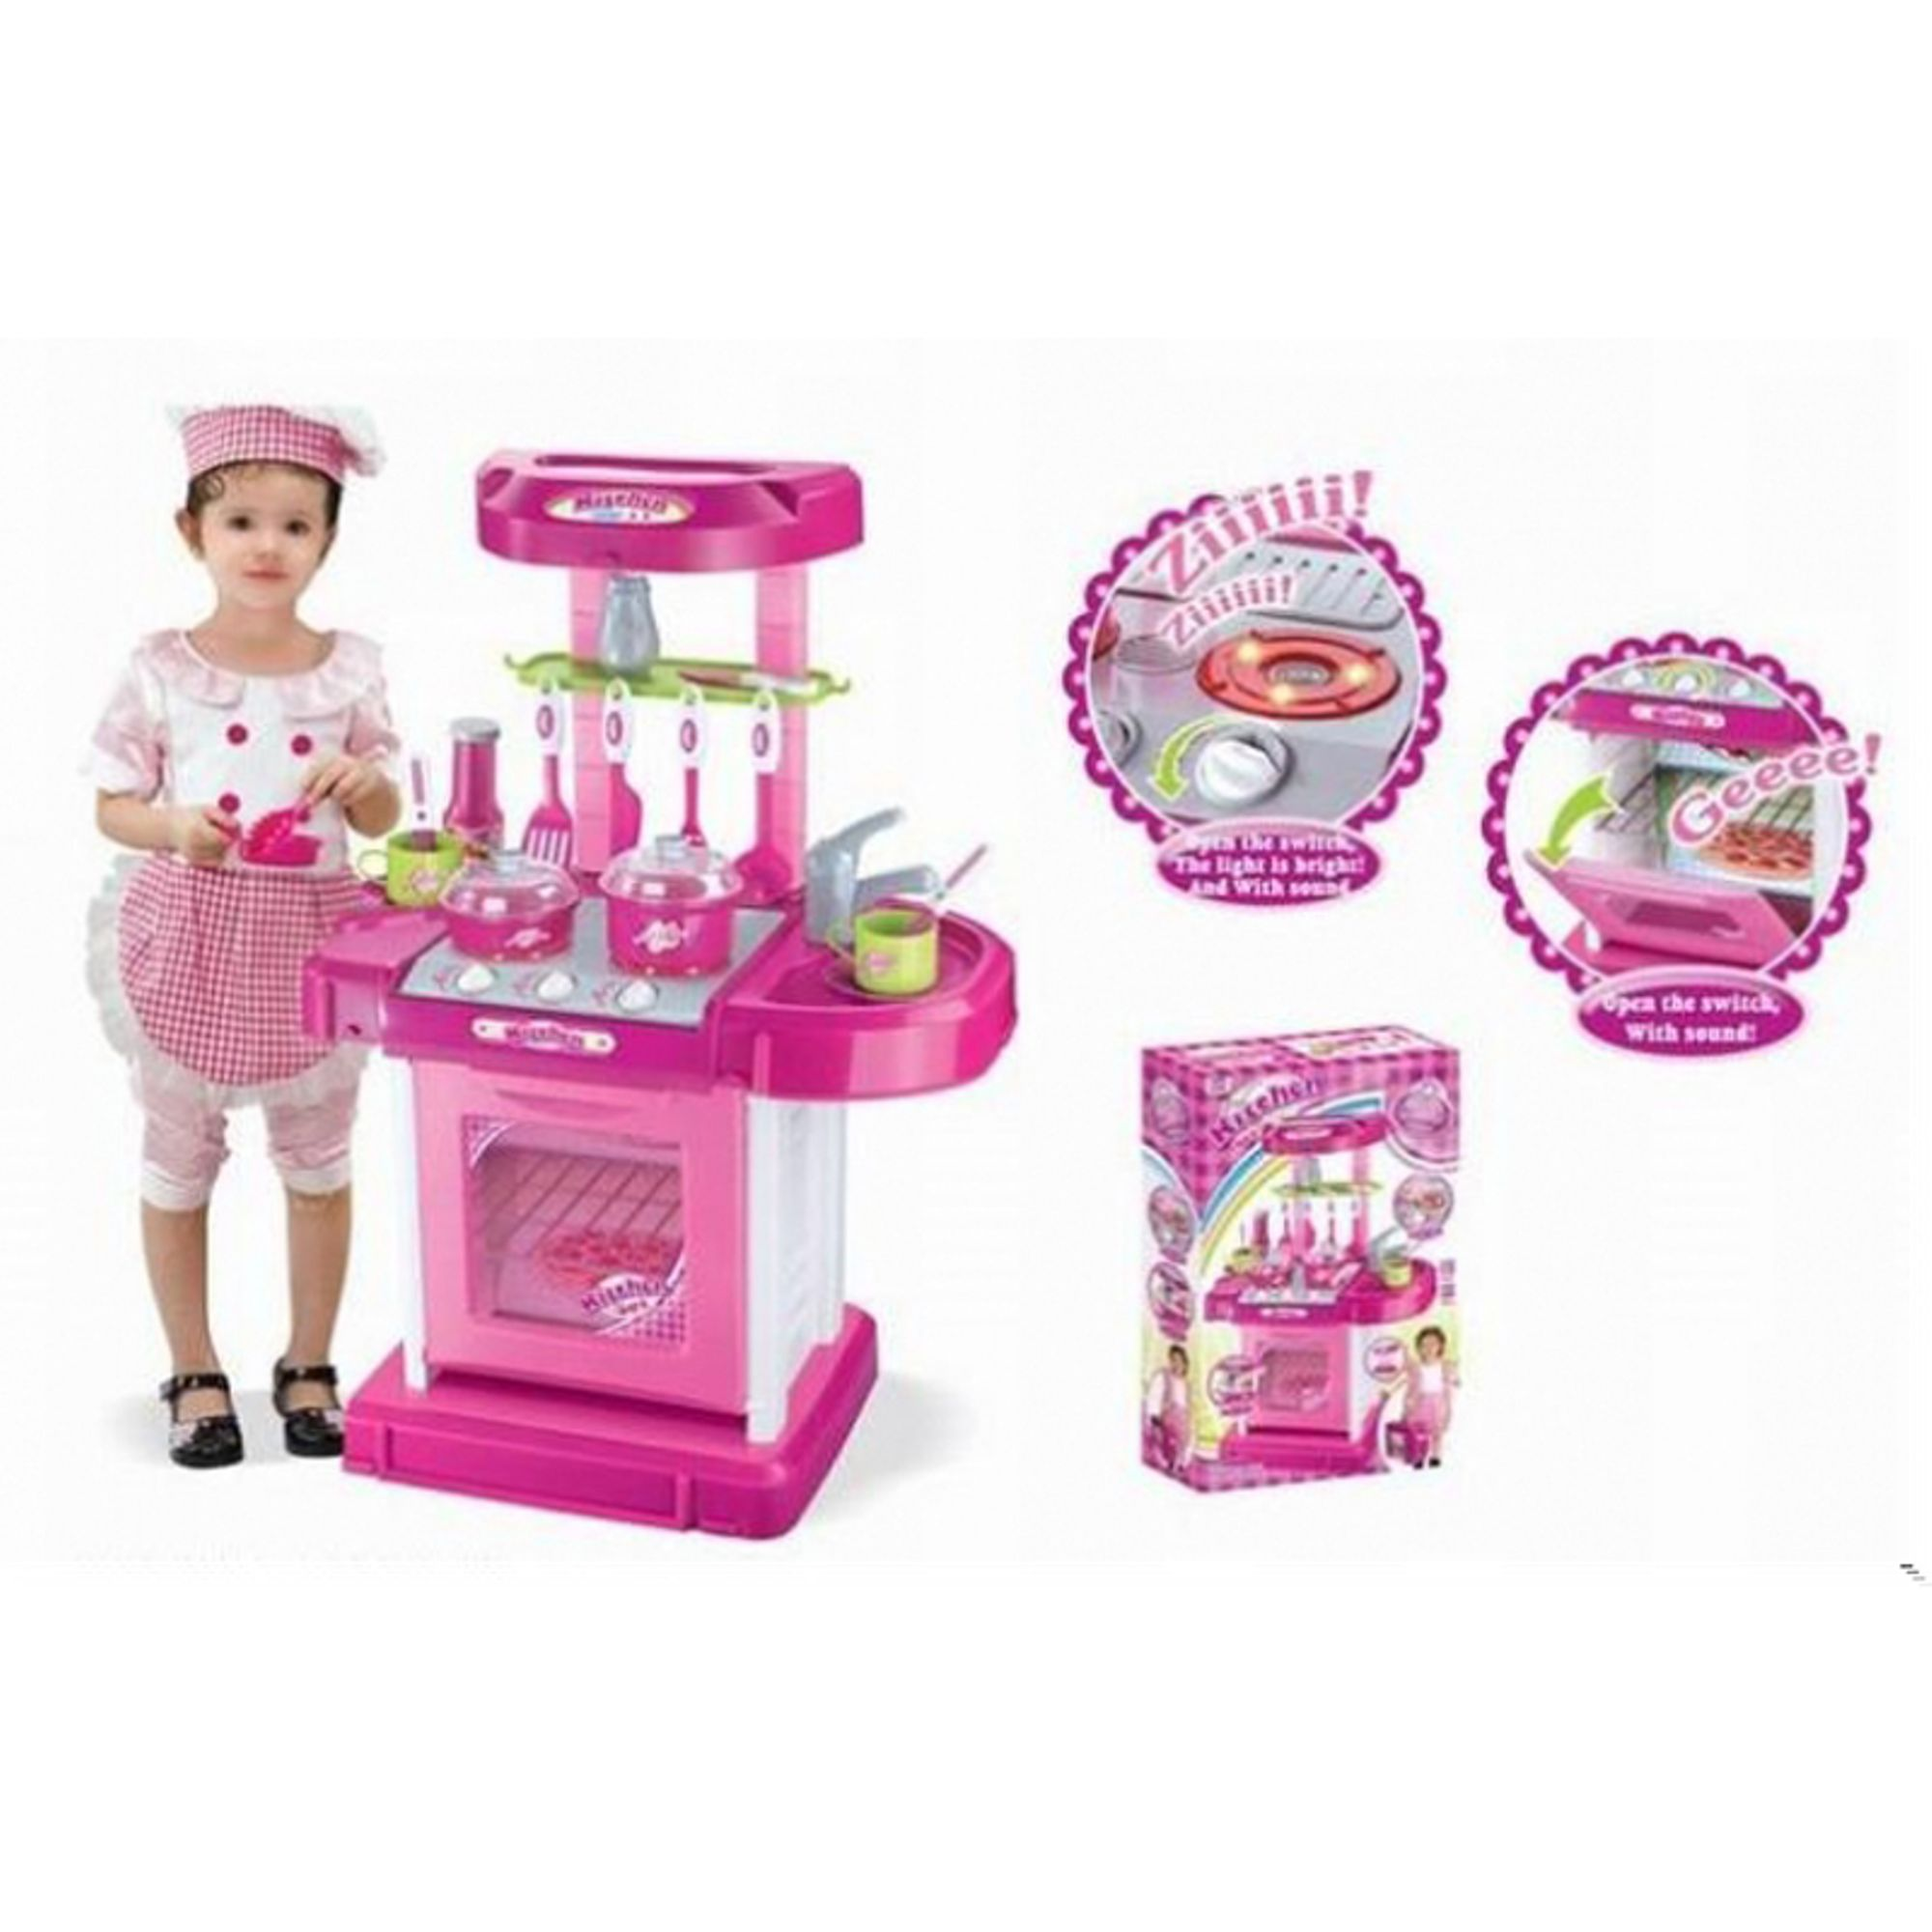 "26"" Portable Kitchen Appliance Oven Cooking Play Set w/ Lights & Sound (Pink) TF858 16.5""L x 10""W x 26""H."